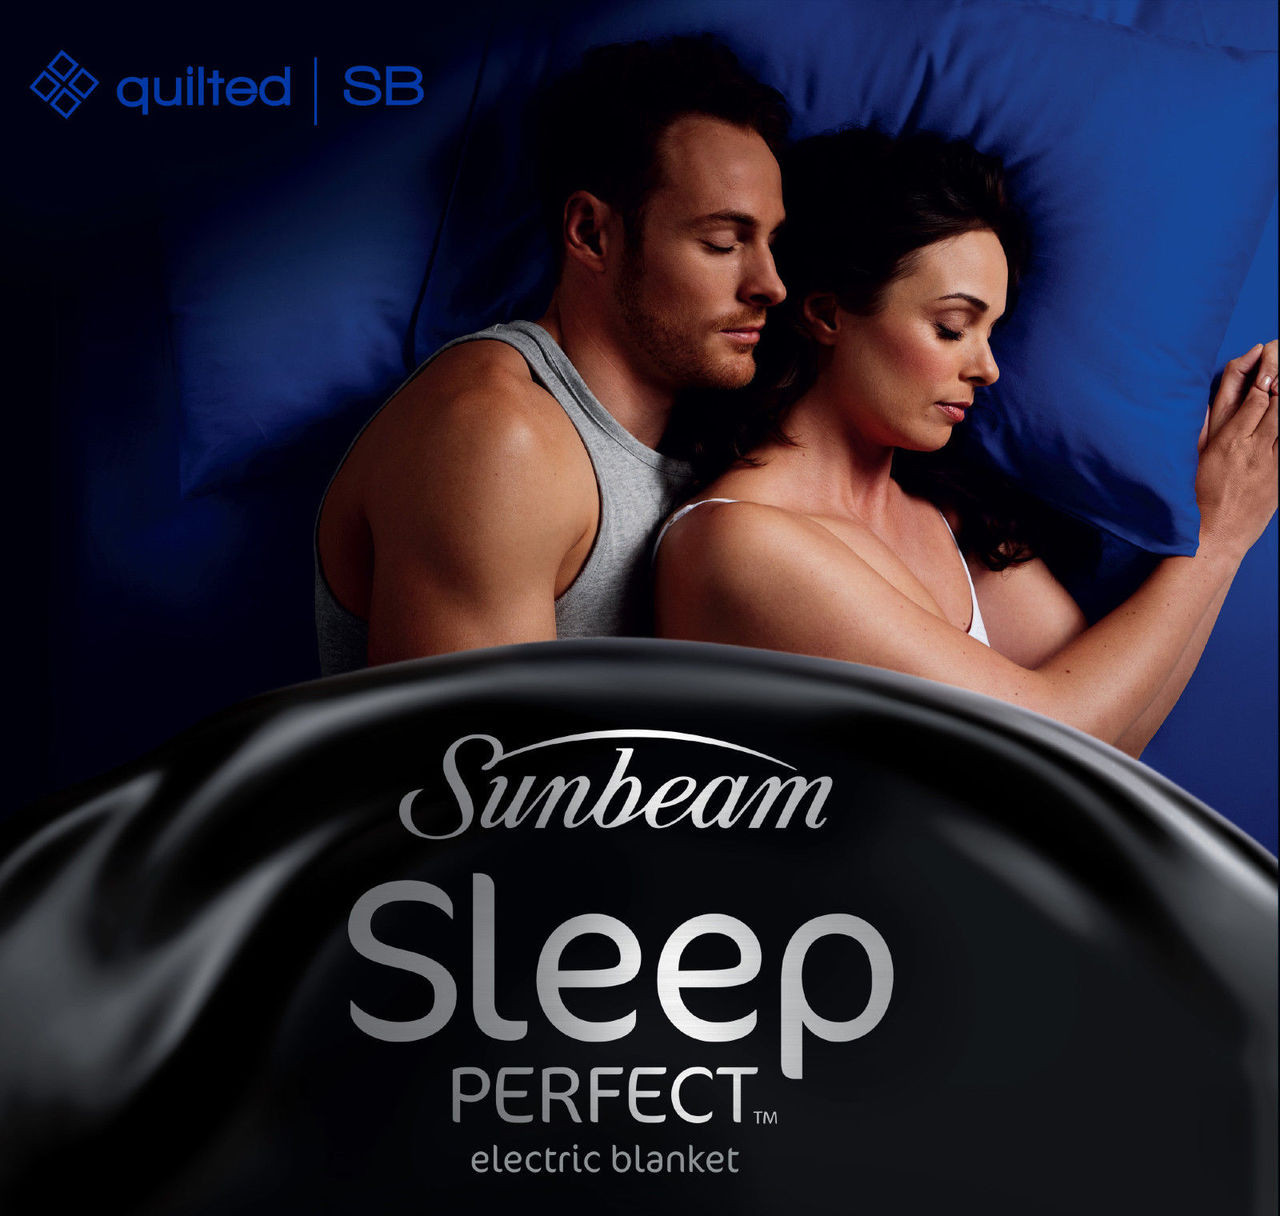 Sunbeam BL5421 Sleep Perfect™ Quilted Heated Blanket - Single Bed